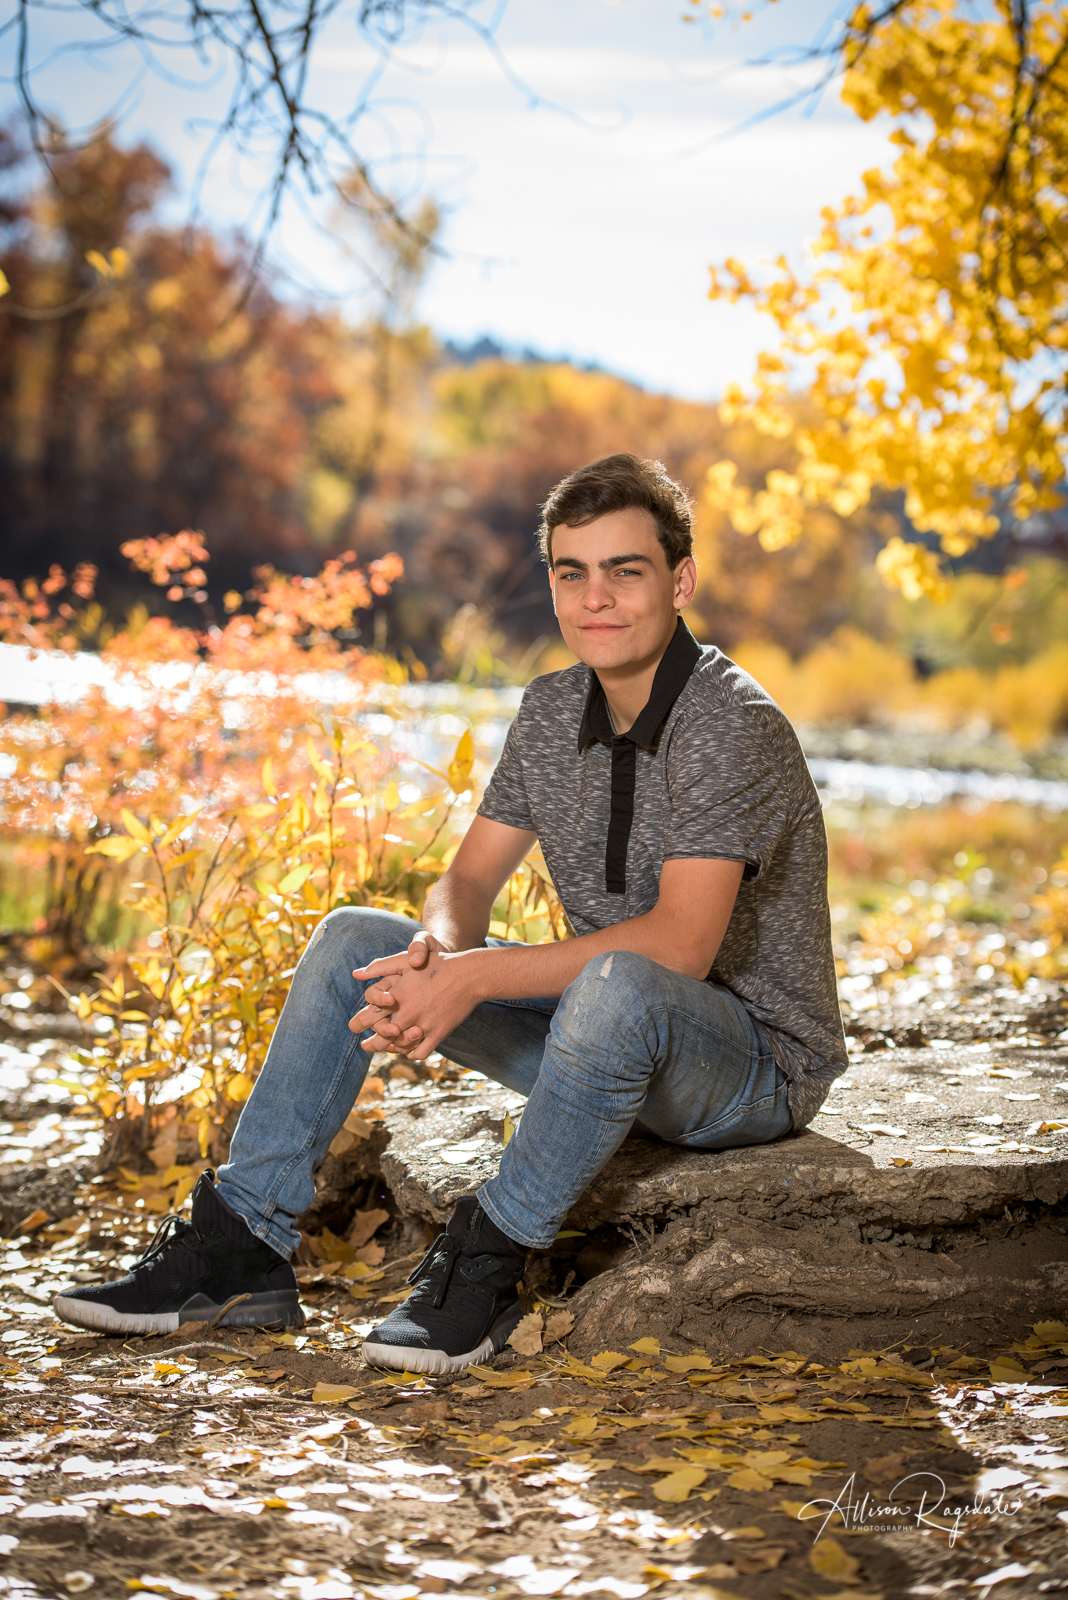 Jacob Behn's Durango Senior Pictures